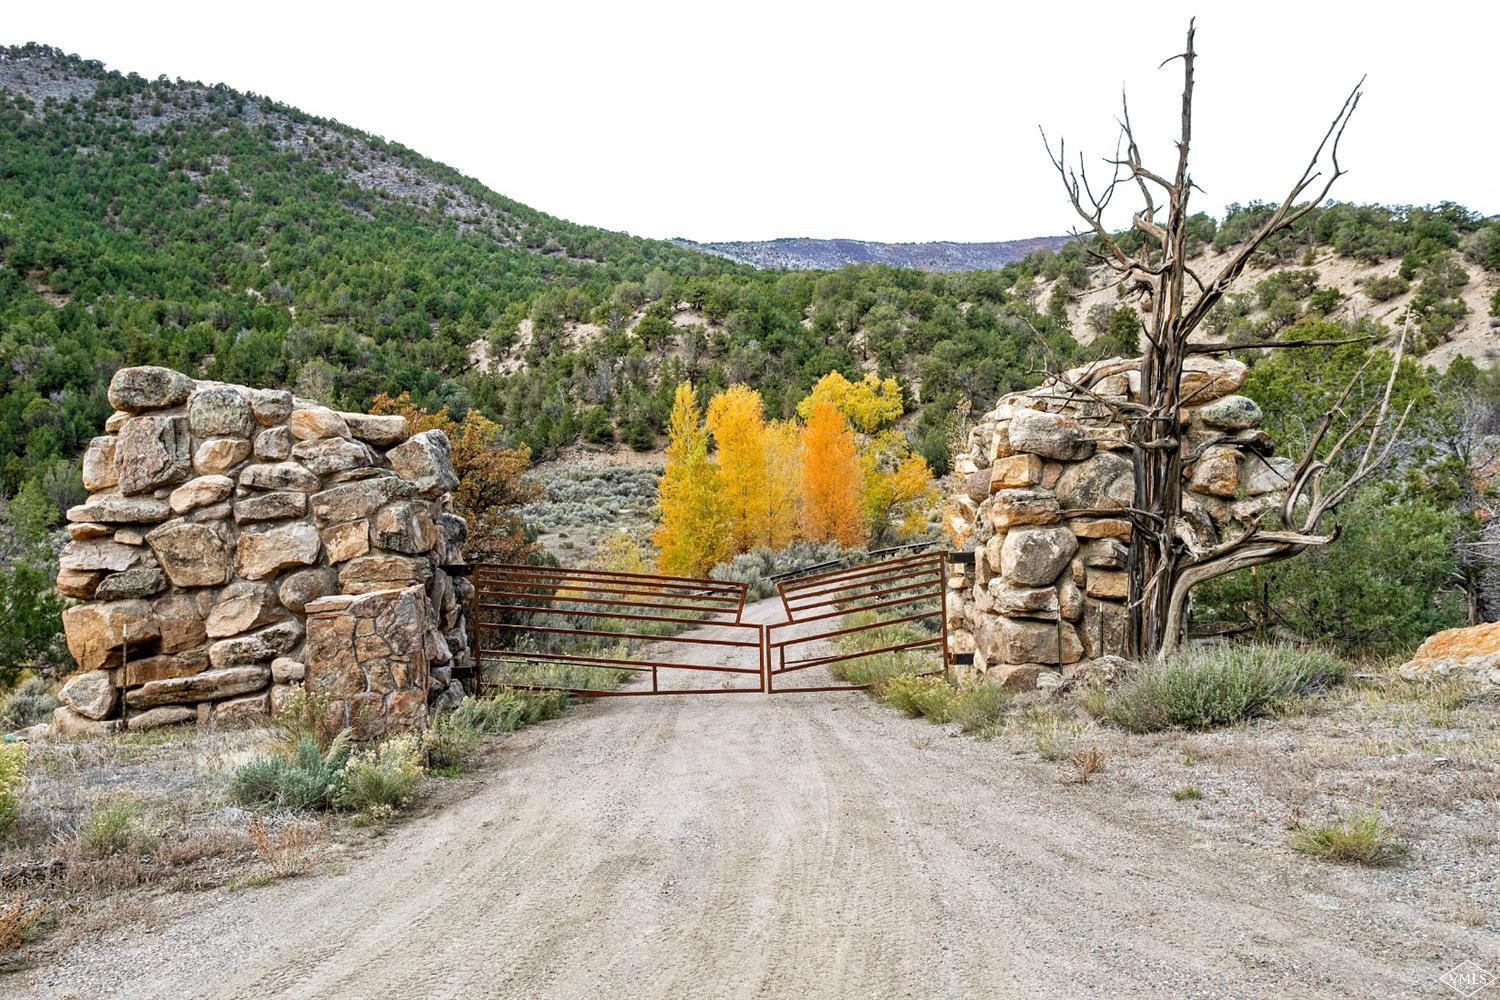 2742 Sweetwater Road, 1, Gypsum, CO 81637 Property Photo - Gypsum, CO real estate listing